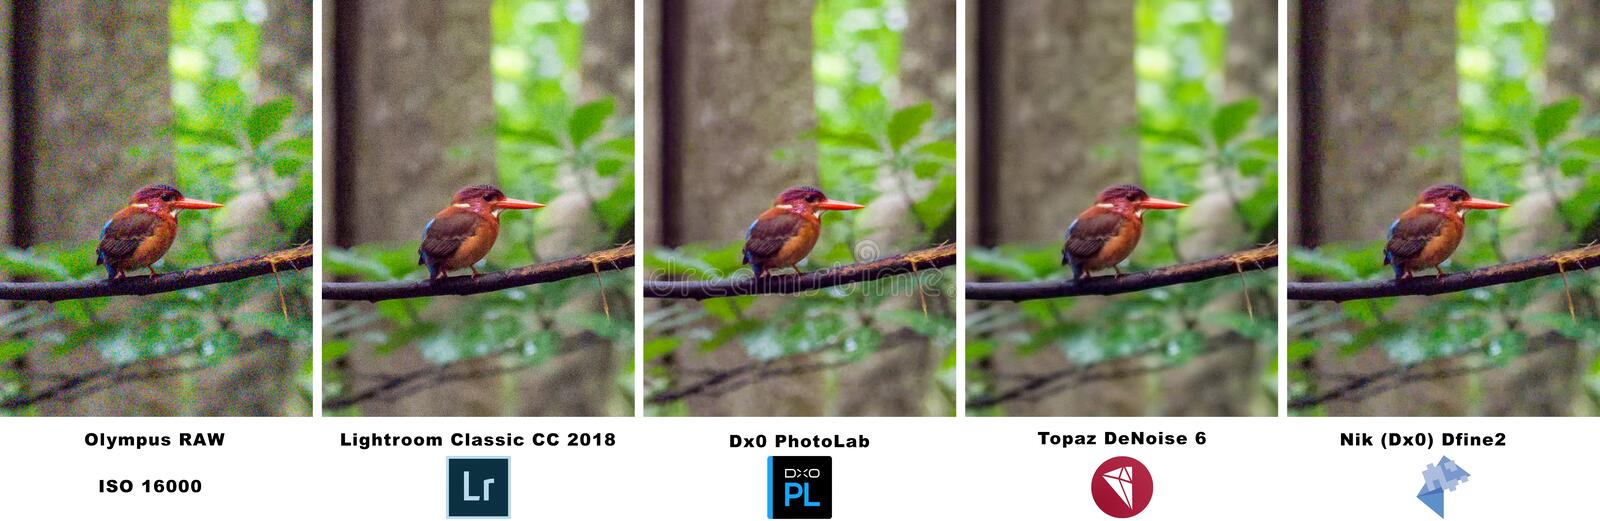 Noise reduction software comparison, Ceyx fallax. Comparison of the effectiveness of various noise reduction software products, Adobe Lightroom, Topaz DeNoise 6 stock photo